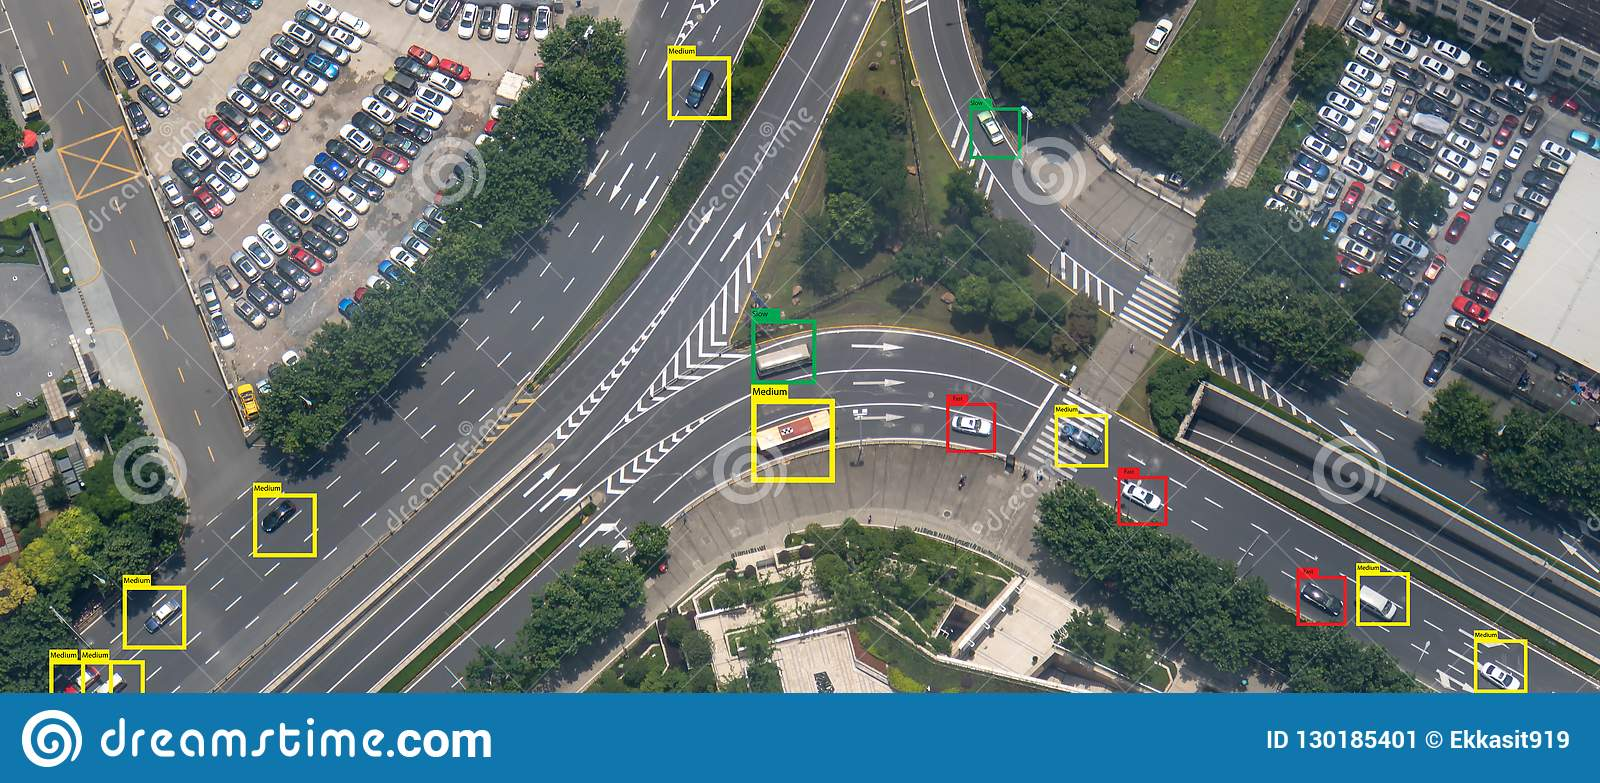 Iot machine learning with speed car and object recognition which use artificial intelligence to measurements ,analytic and identic